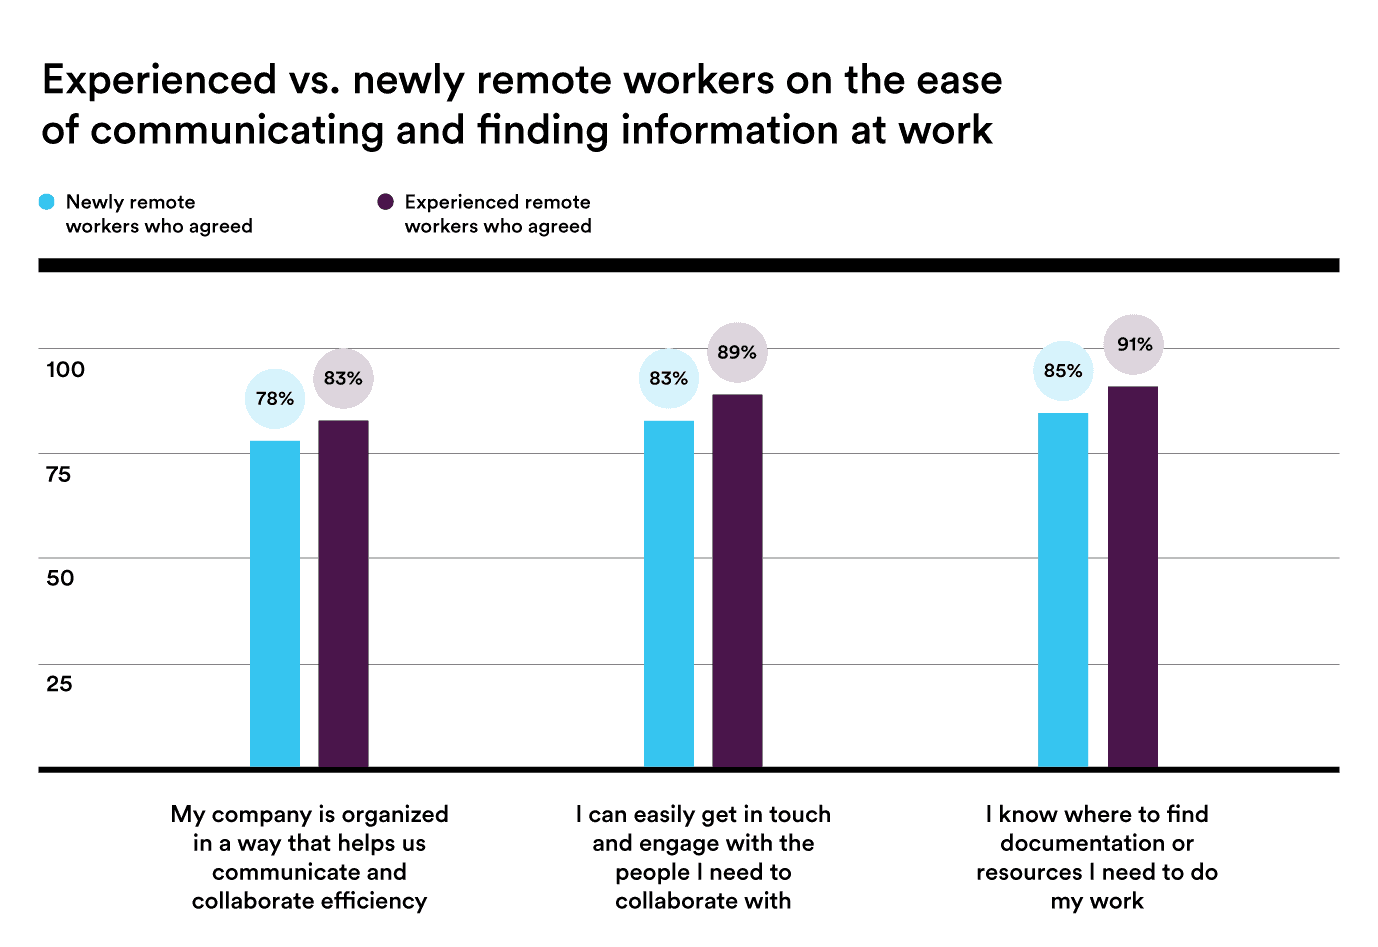 Ease of communication - 7 Essential Tips for Effectively Managing a Remote Team During a Crisis - Booth & Partners - Blog